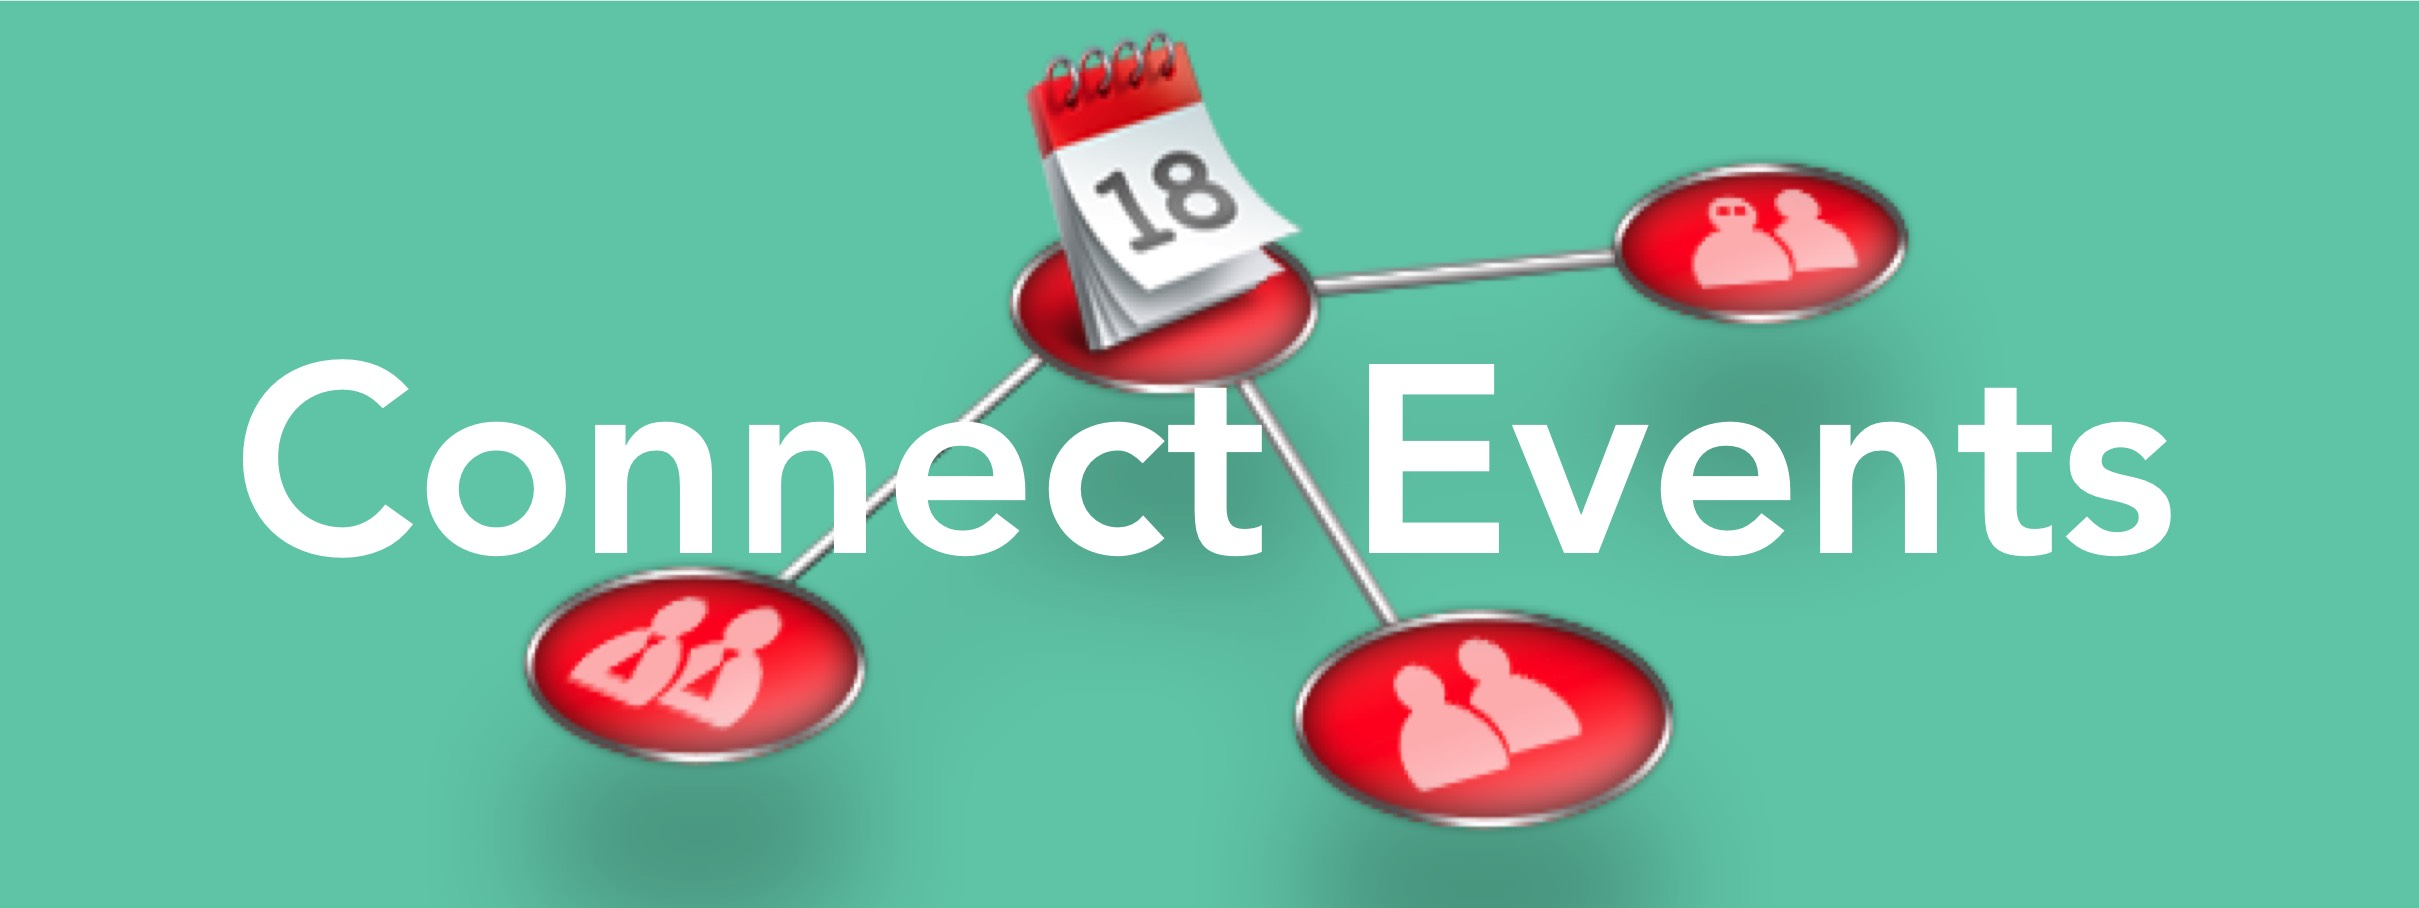 Home Page Icons - Connect Events 2